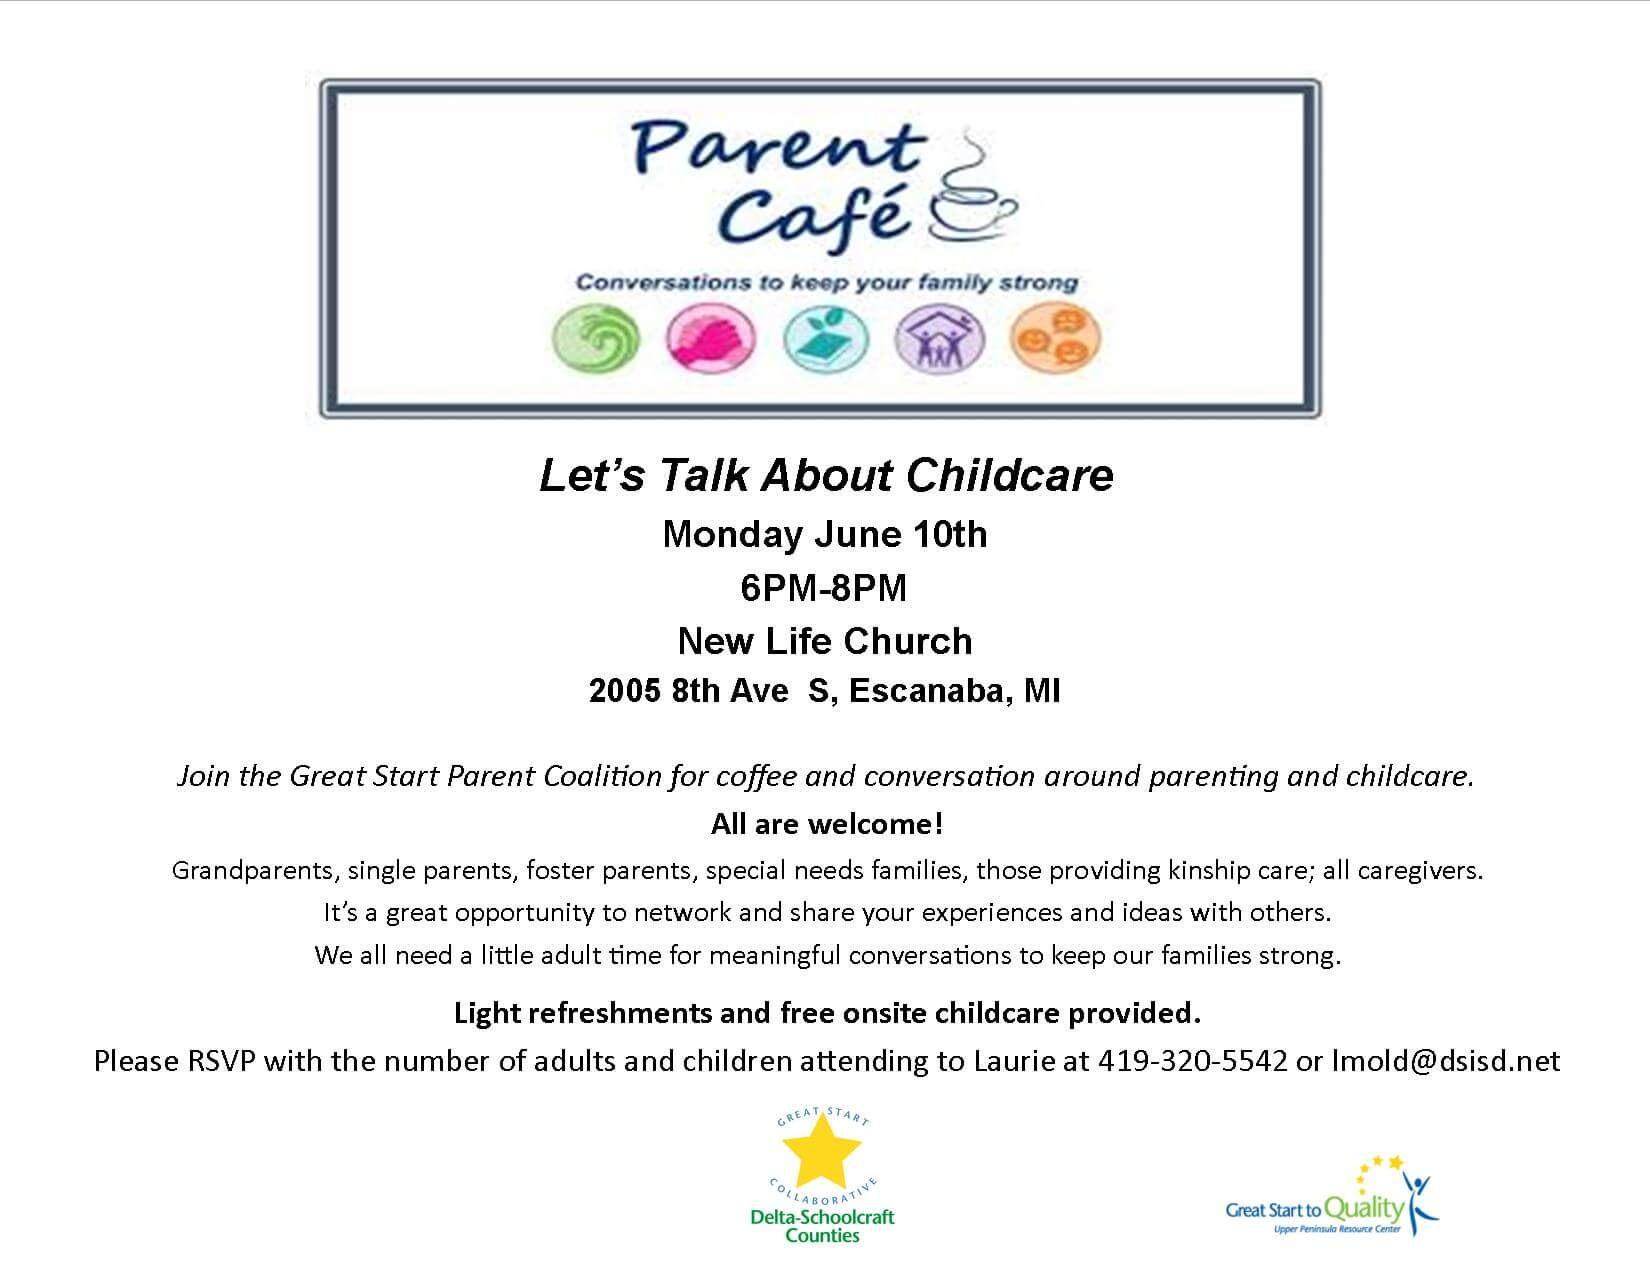 Join the Great Start Parent Coalition for coffee and conversation around parenting and childcare. Light refreshments and free onsite childcare provided. Please RSVP with the number of adults and children attending. All are welcome! Grandparents, single parents, foster parents, those providing kinship care. It's a great opportunity to network and share your experiences and ideas with others. We all need a little adult time for meaningful conversations to keep our families strong.